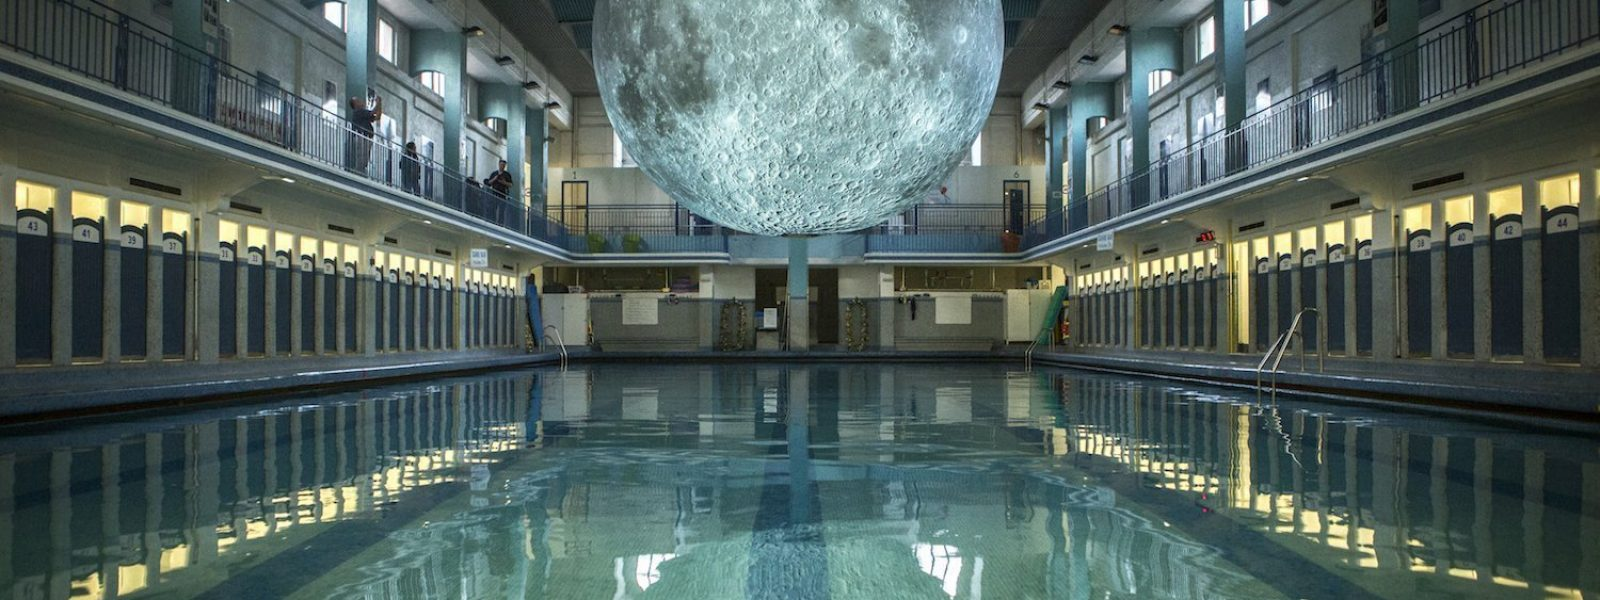 Luke Jerram's giant moon at the Rennes swimming pool